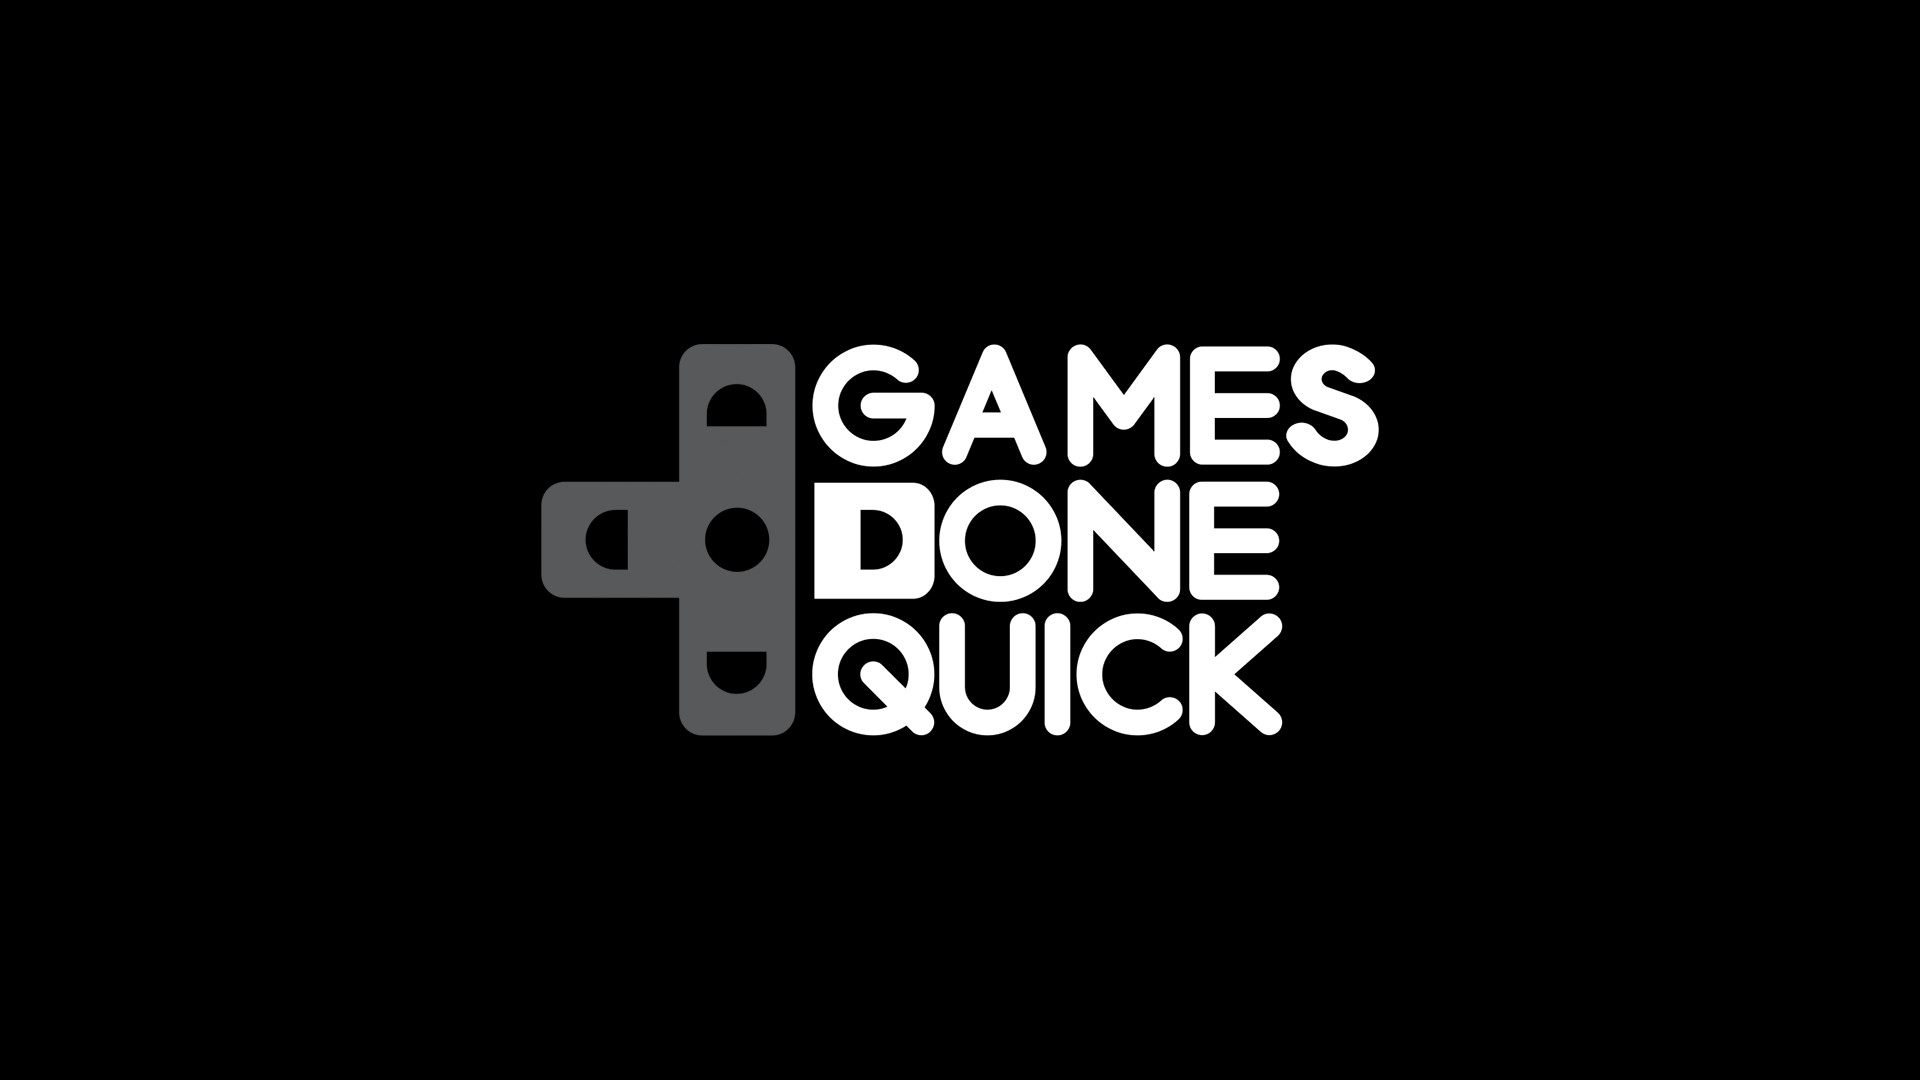 Games Done Quick 2020.Awesome Games Done Quick 2020 Destiny 2 Bloodlines And